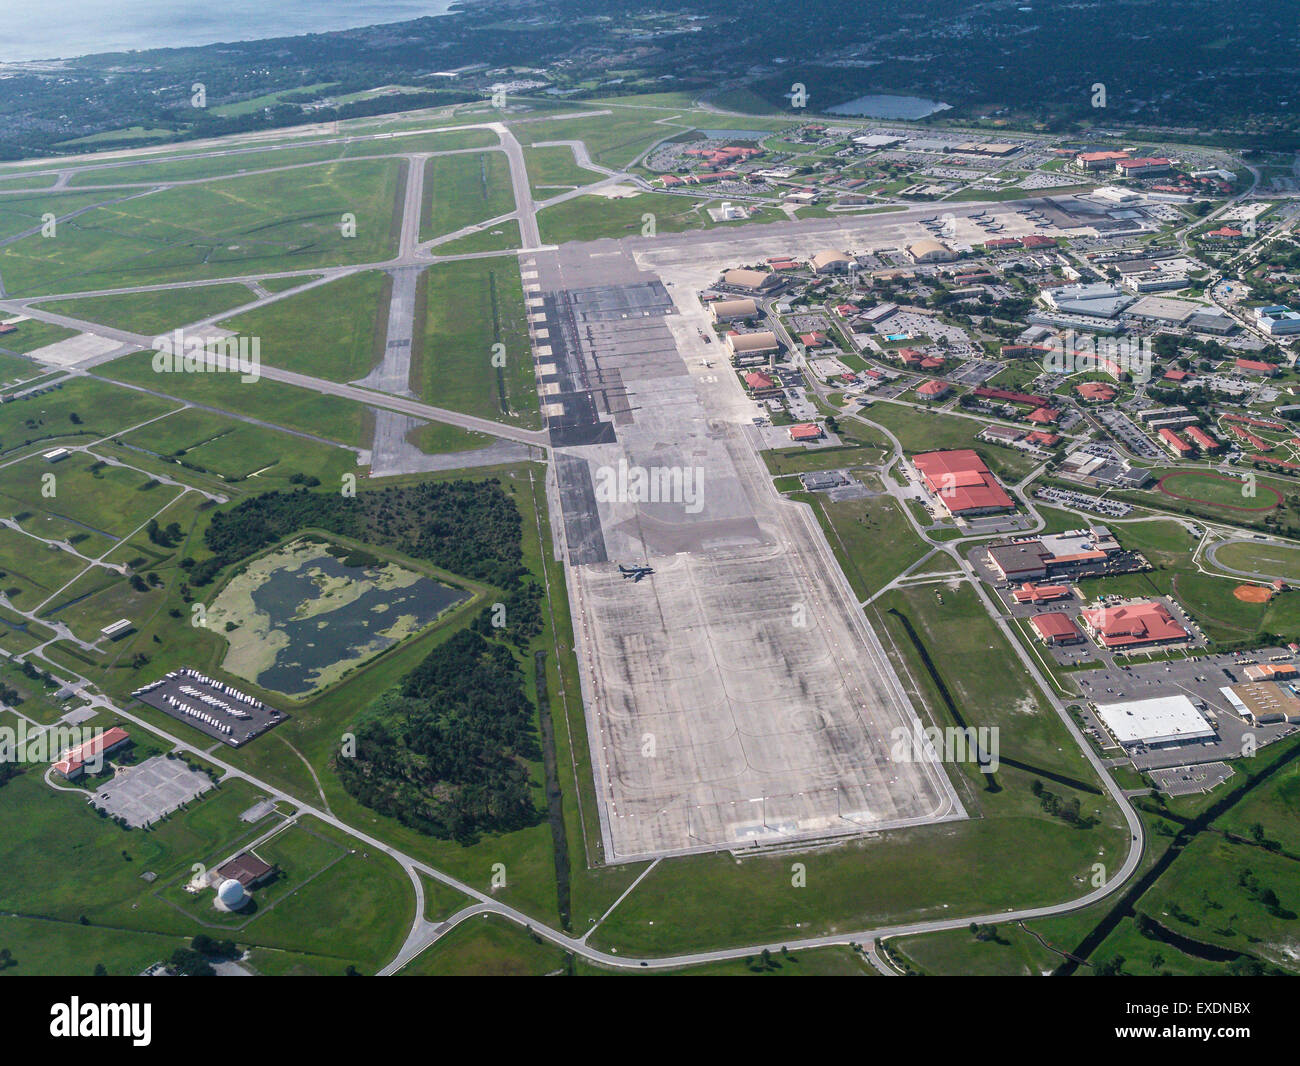 Aerial view of MacDill Air Force Base in Tampa Florida - Stock Image